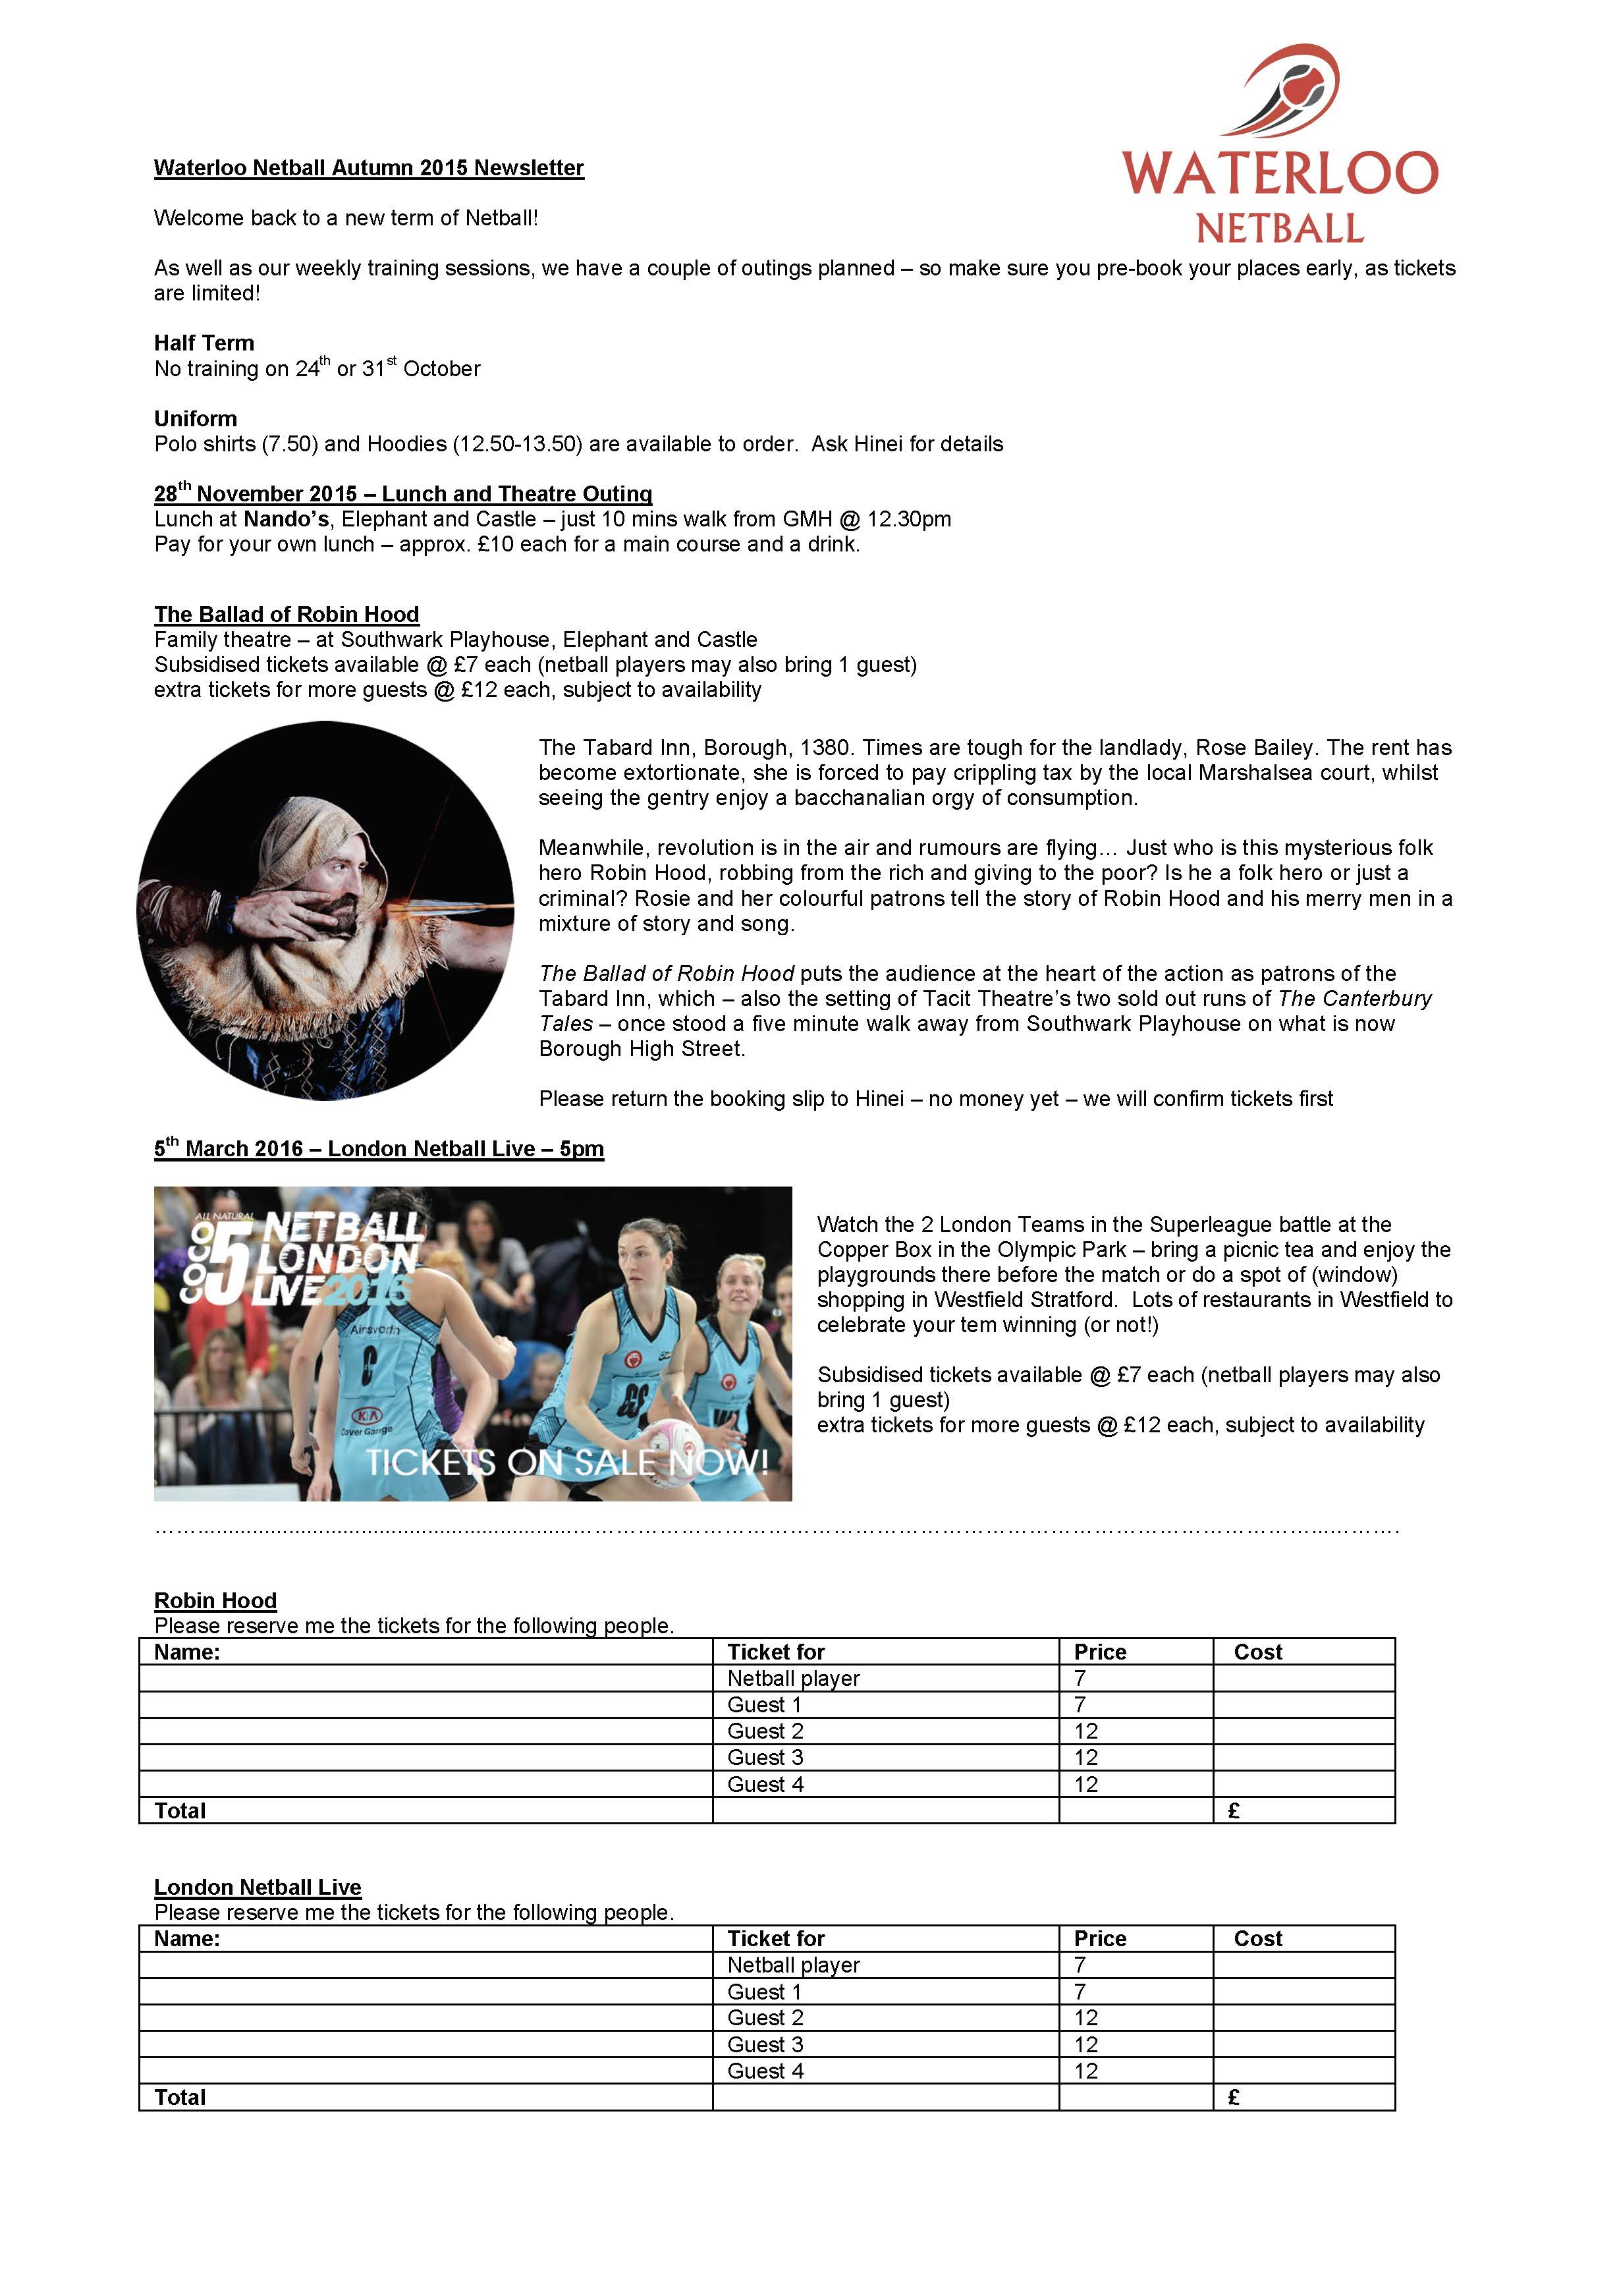 Waterloo Netball Autumn Newsletter  2015